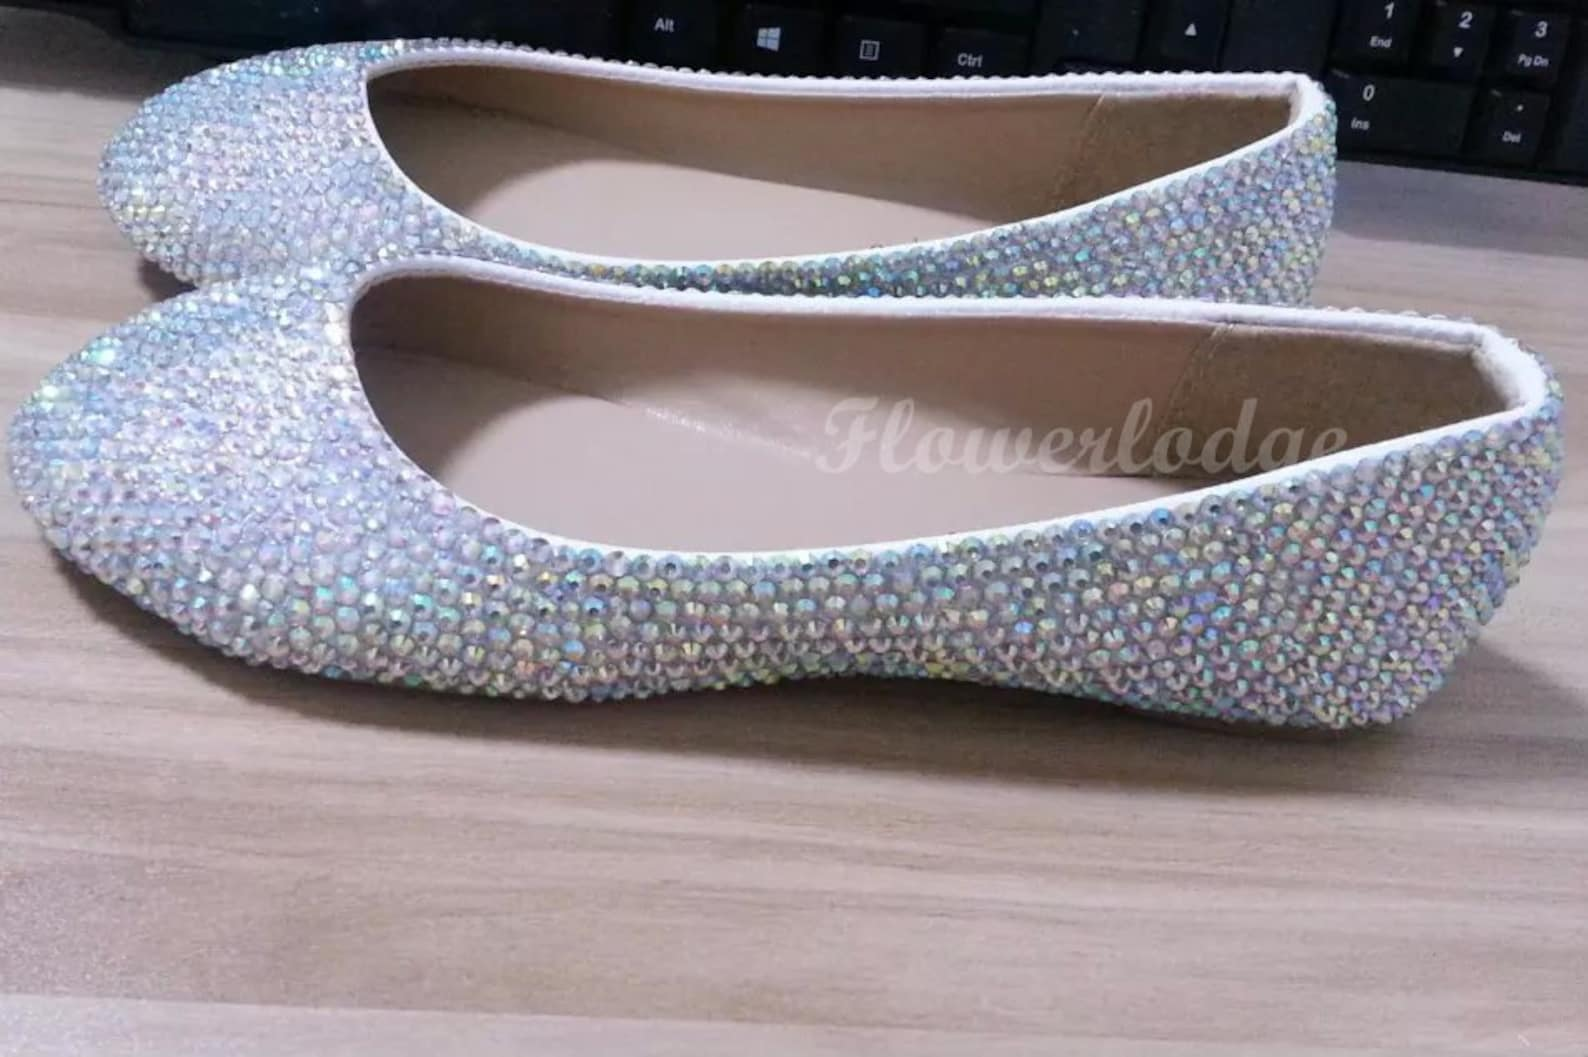 crystal flats shoes rhinestone sparkle custom flats closed toe ballet flat shoes, custom peep toe flats soft comfortable flat sh